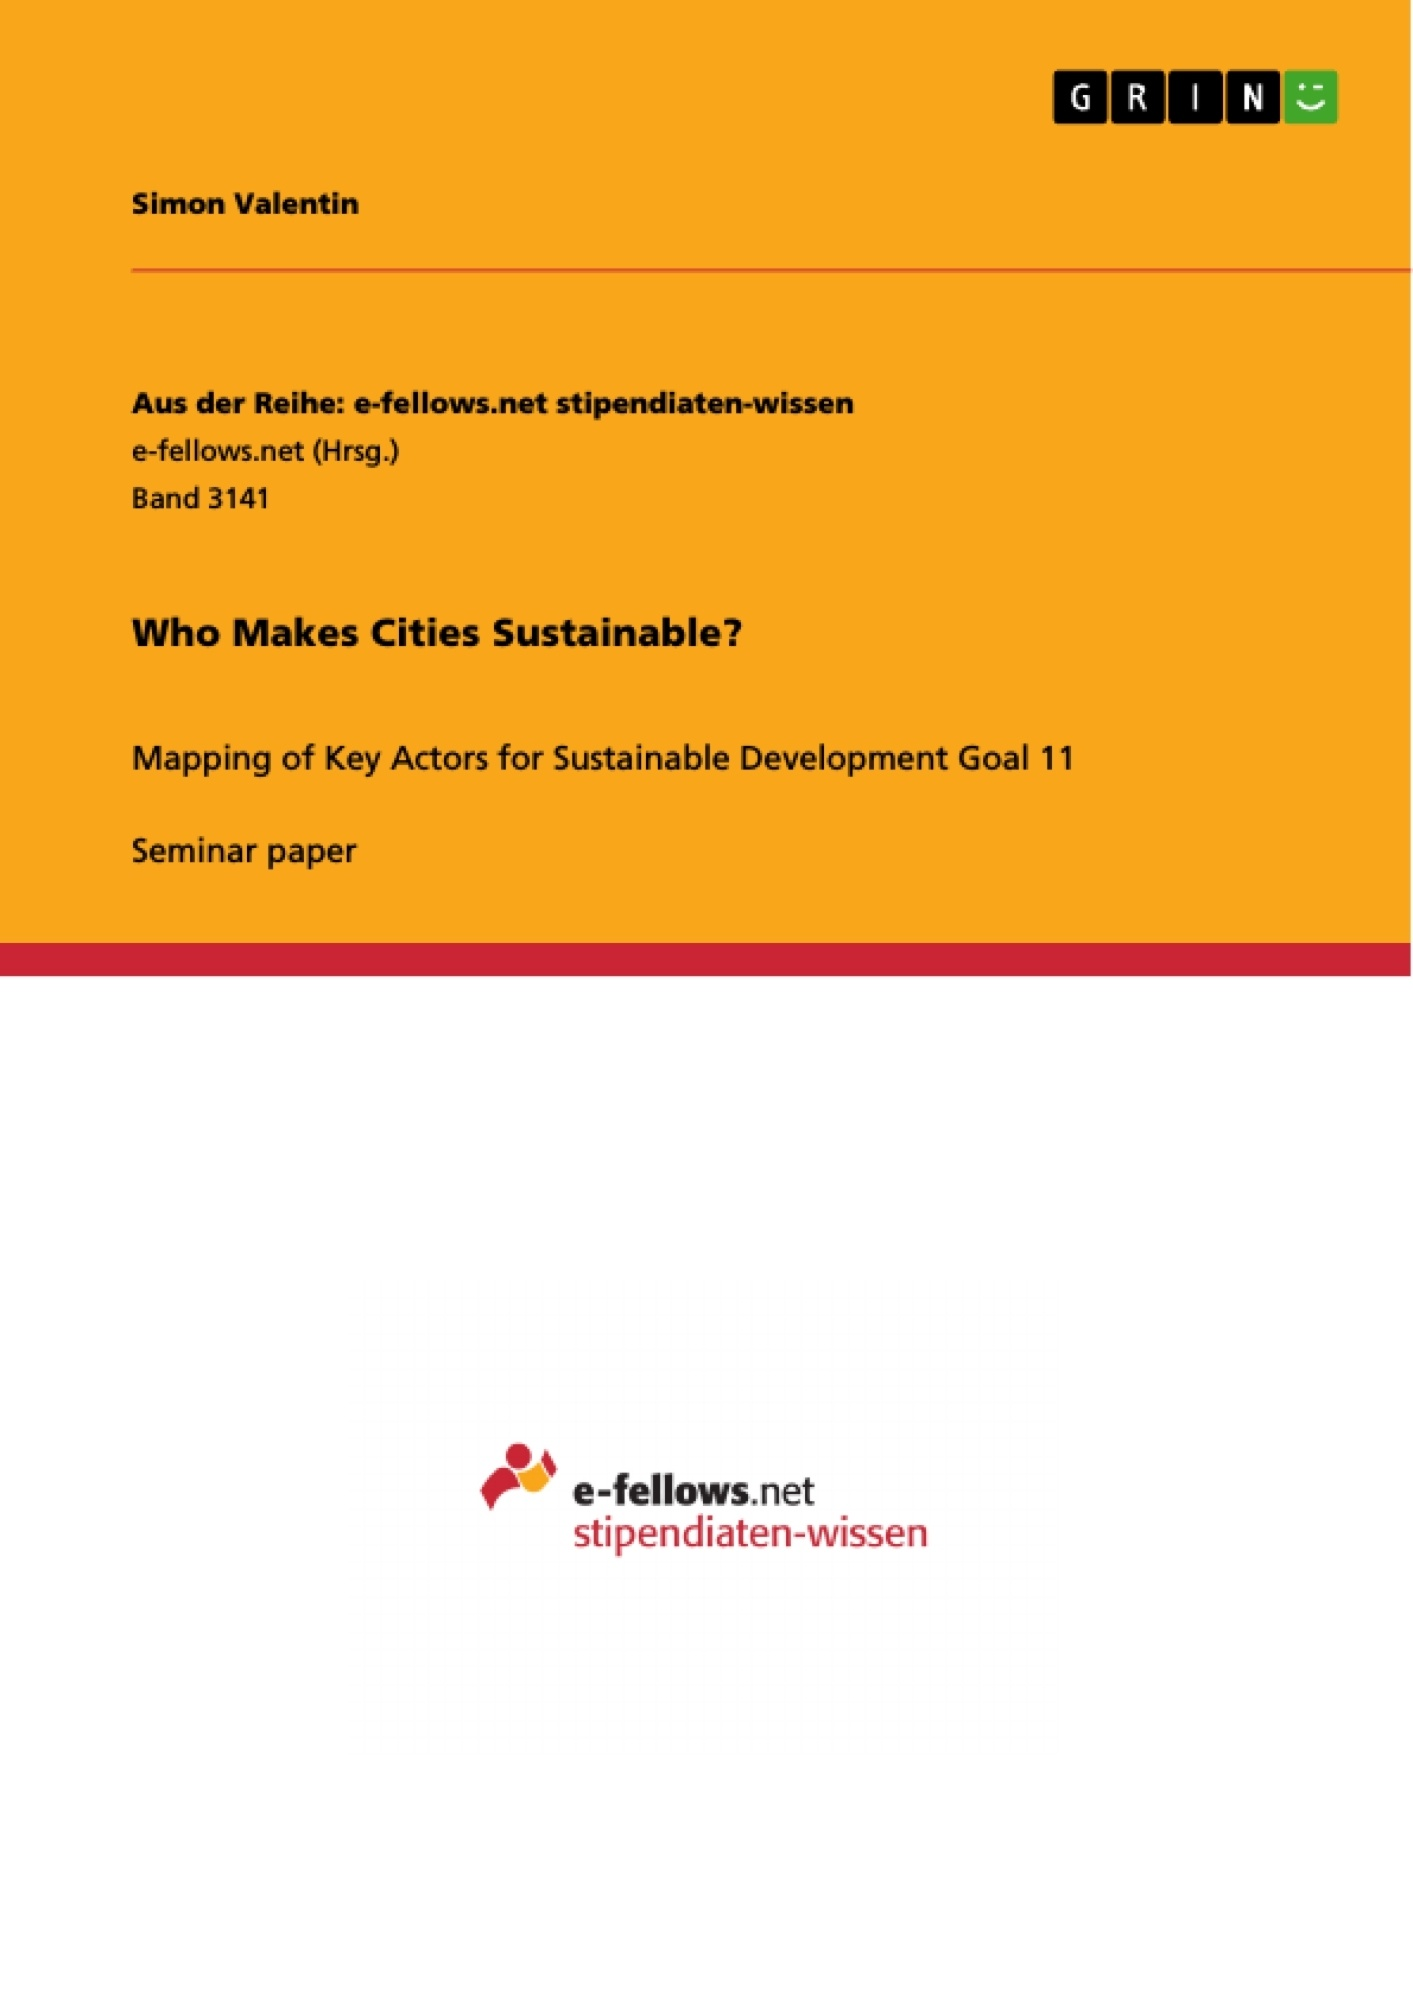 Title: Who Makes Cities Sustainable?